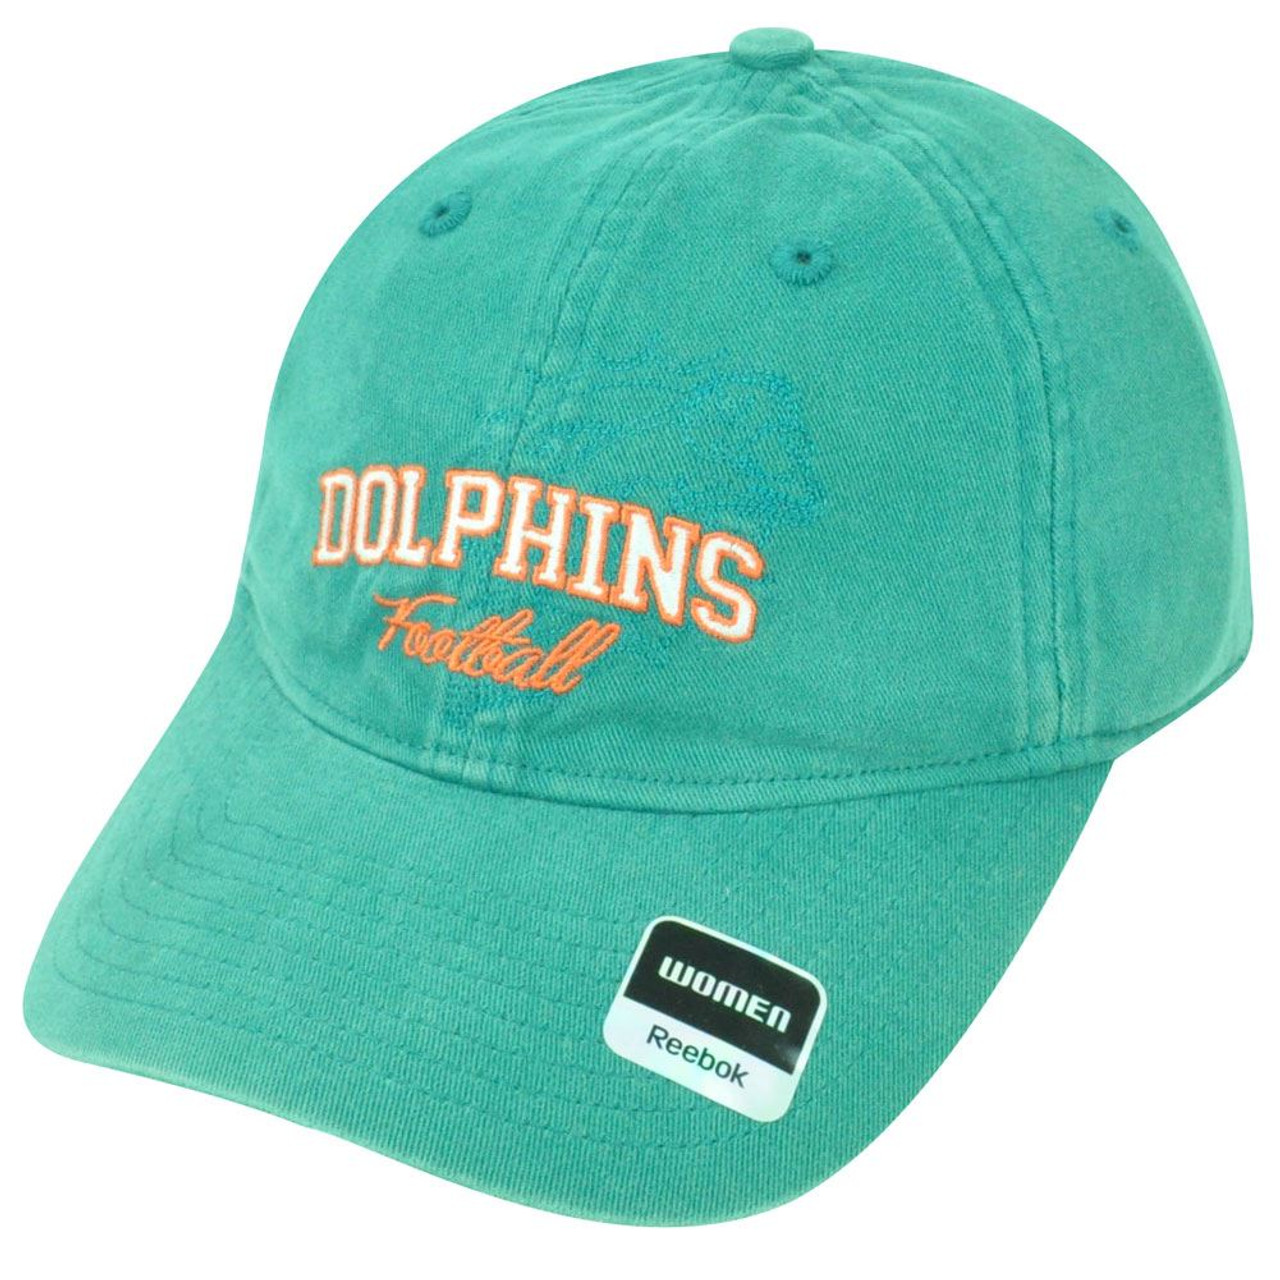 online store a50e0 f8484 NFL Miami Dolphins Relax Reebok Women Clipbuckle Green Adjustable Cap Hat  DH1581